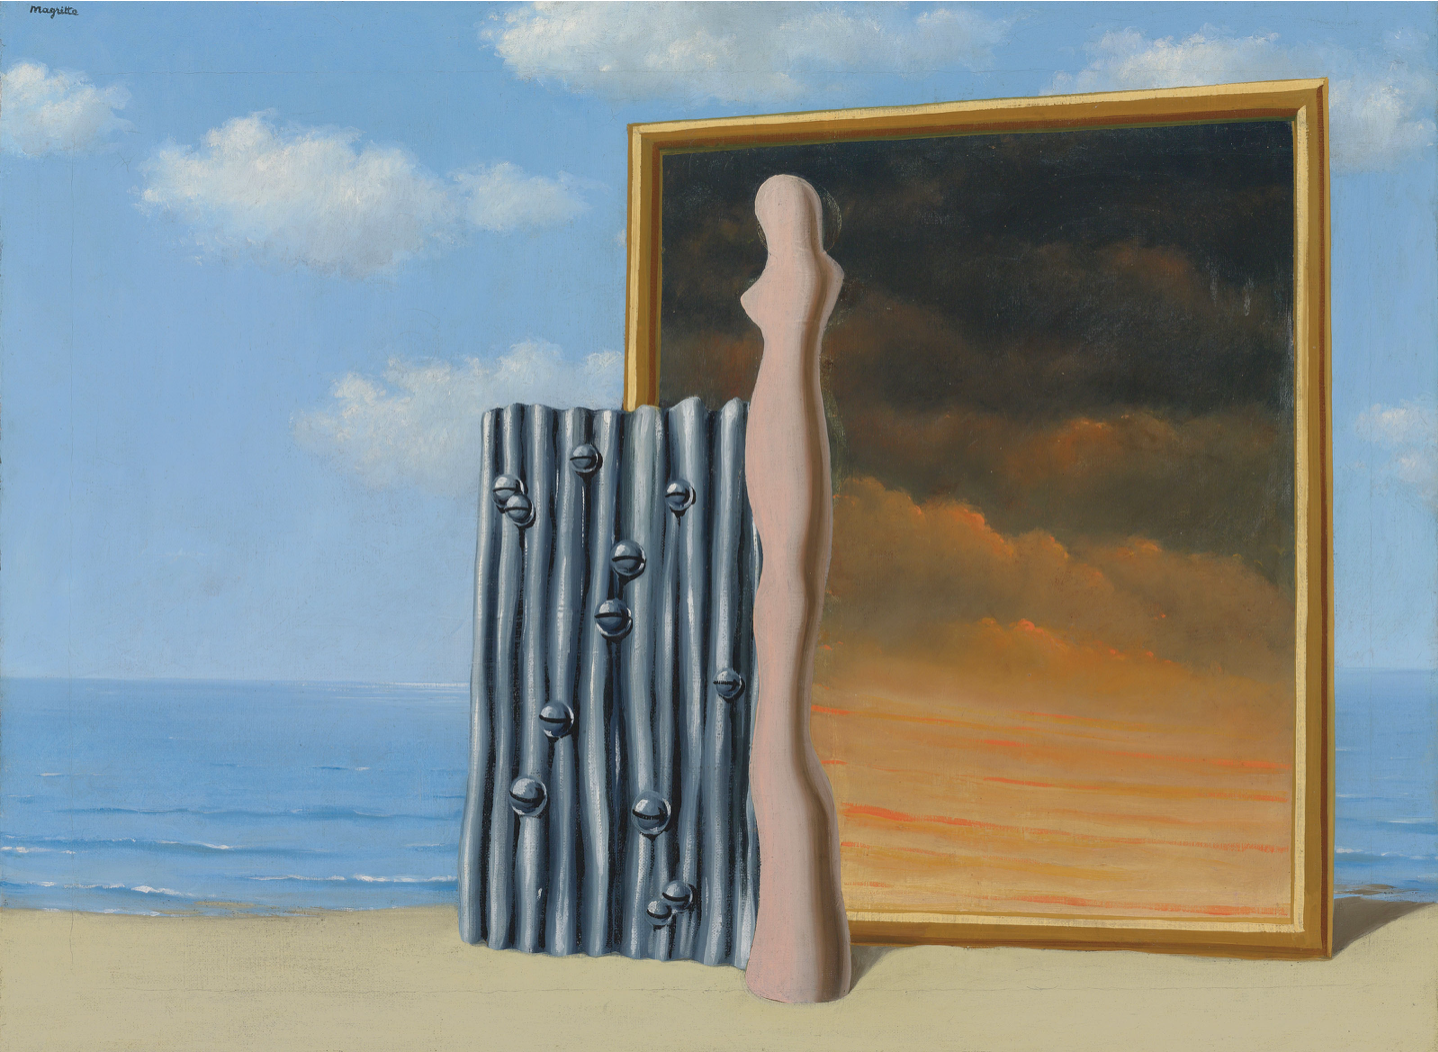 René Magritte, Composition on a Sea Shore (1935-36, estimate: £2,000,000-3,000,000)